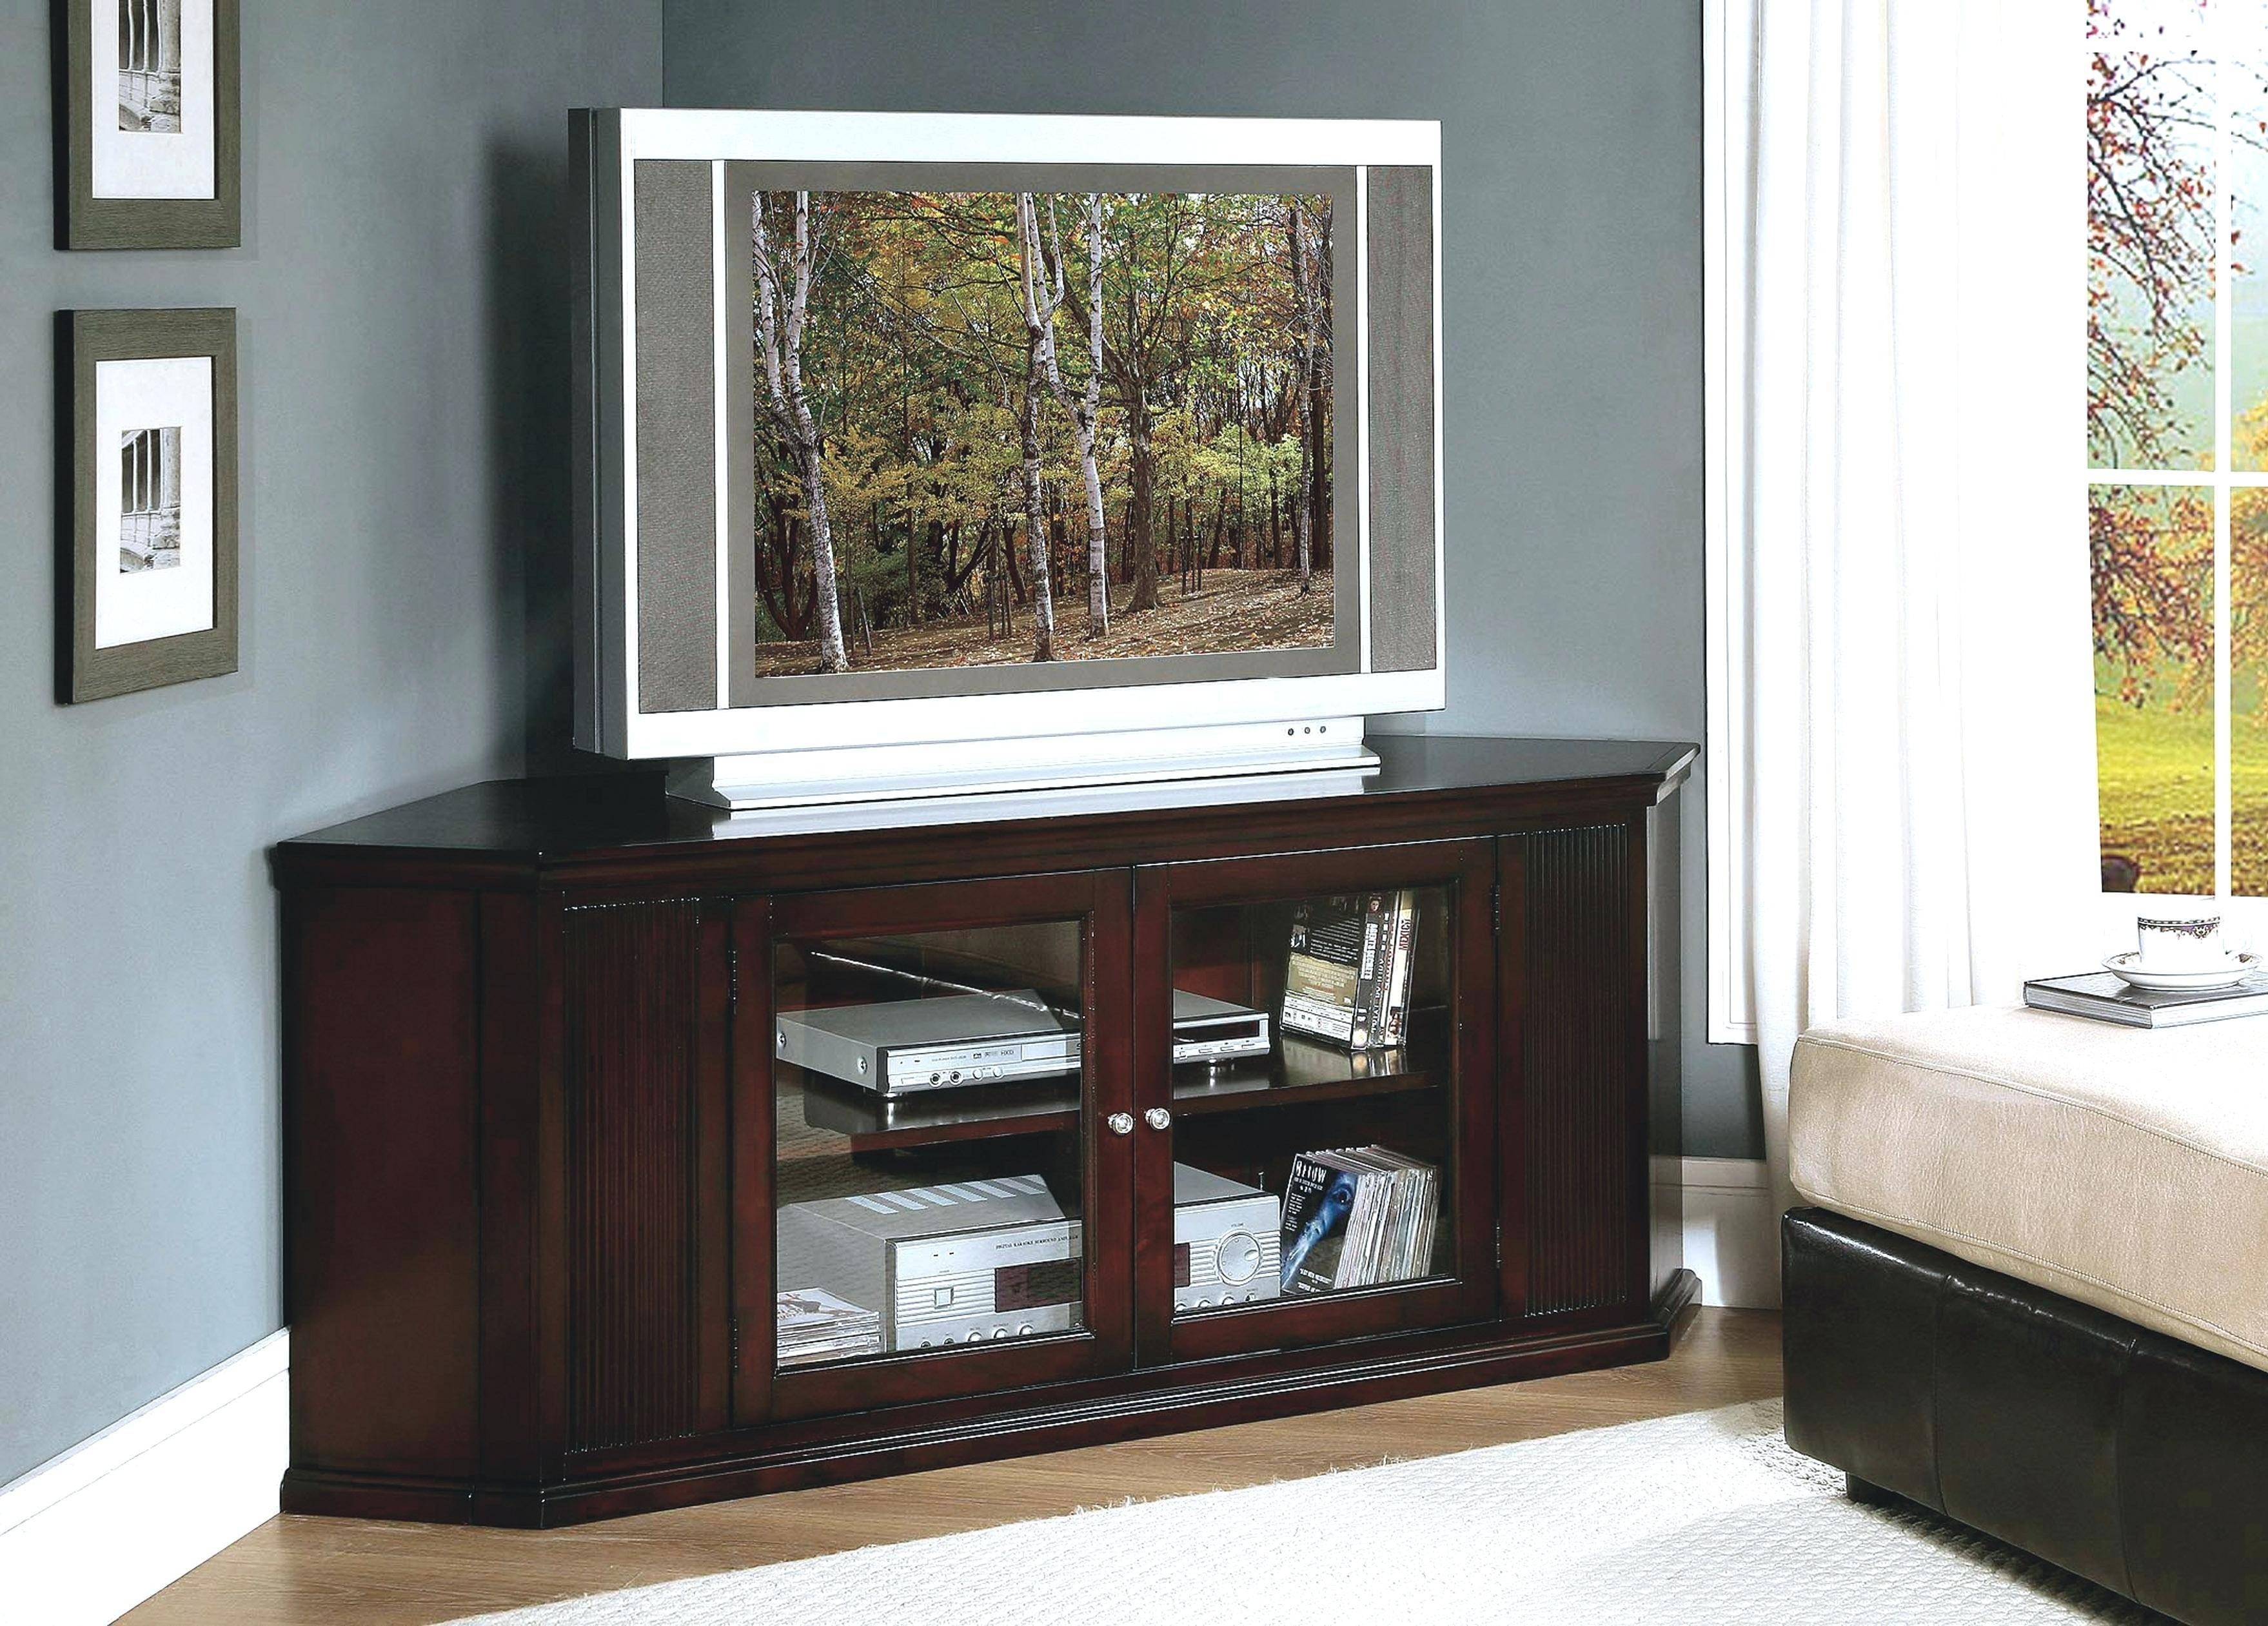 Tv Stand : Gorgeous Oak Gallery Picture Fascinating Tall Corner Tv for Corner Tv Cabinets For Flat Screens With Doors (Image 13 of 15)